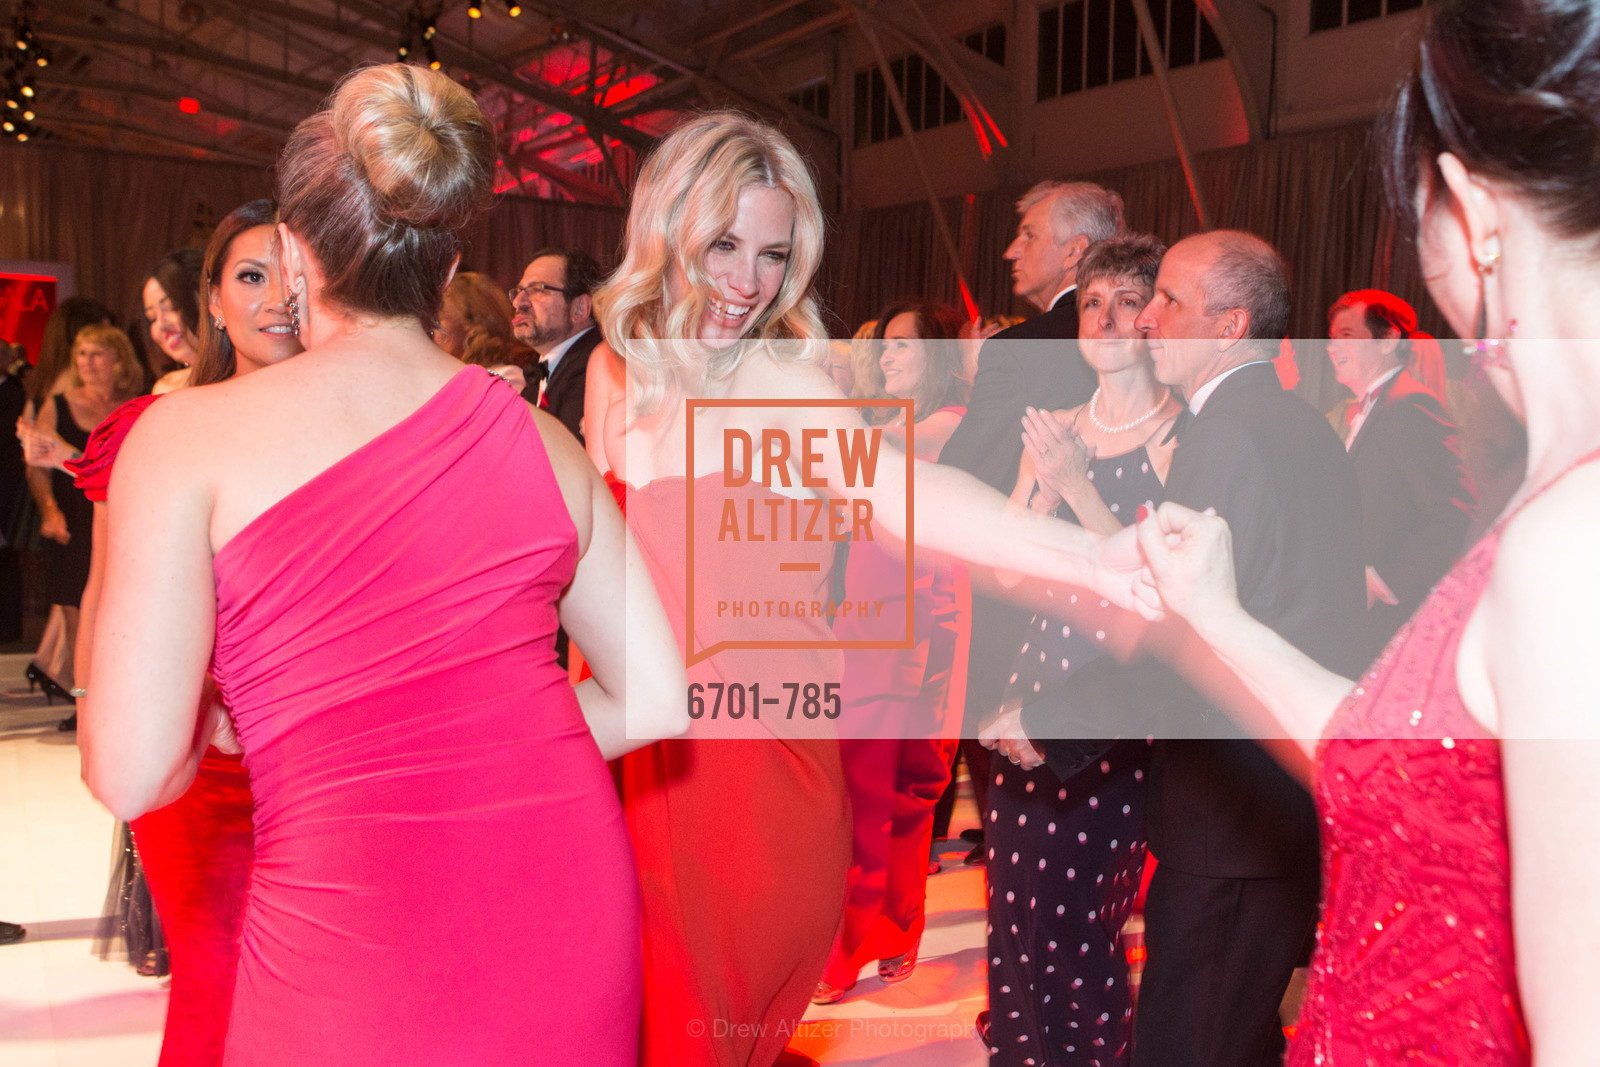 Colby Hallen, 2015 RED CROSS Gala, US, April 12th, 2015,Drew Altizer, Drew Altizer Photography, full-service agency, private events, San Francisco photographer, photographer california